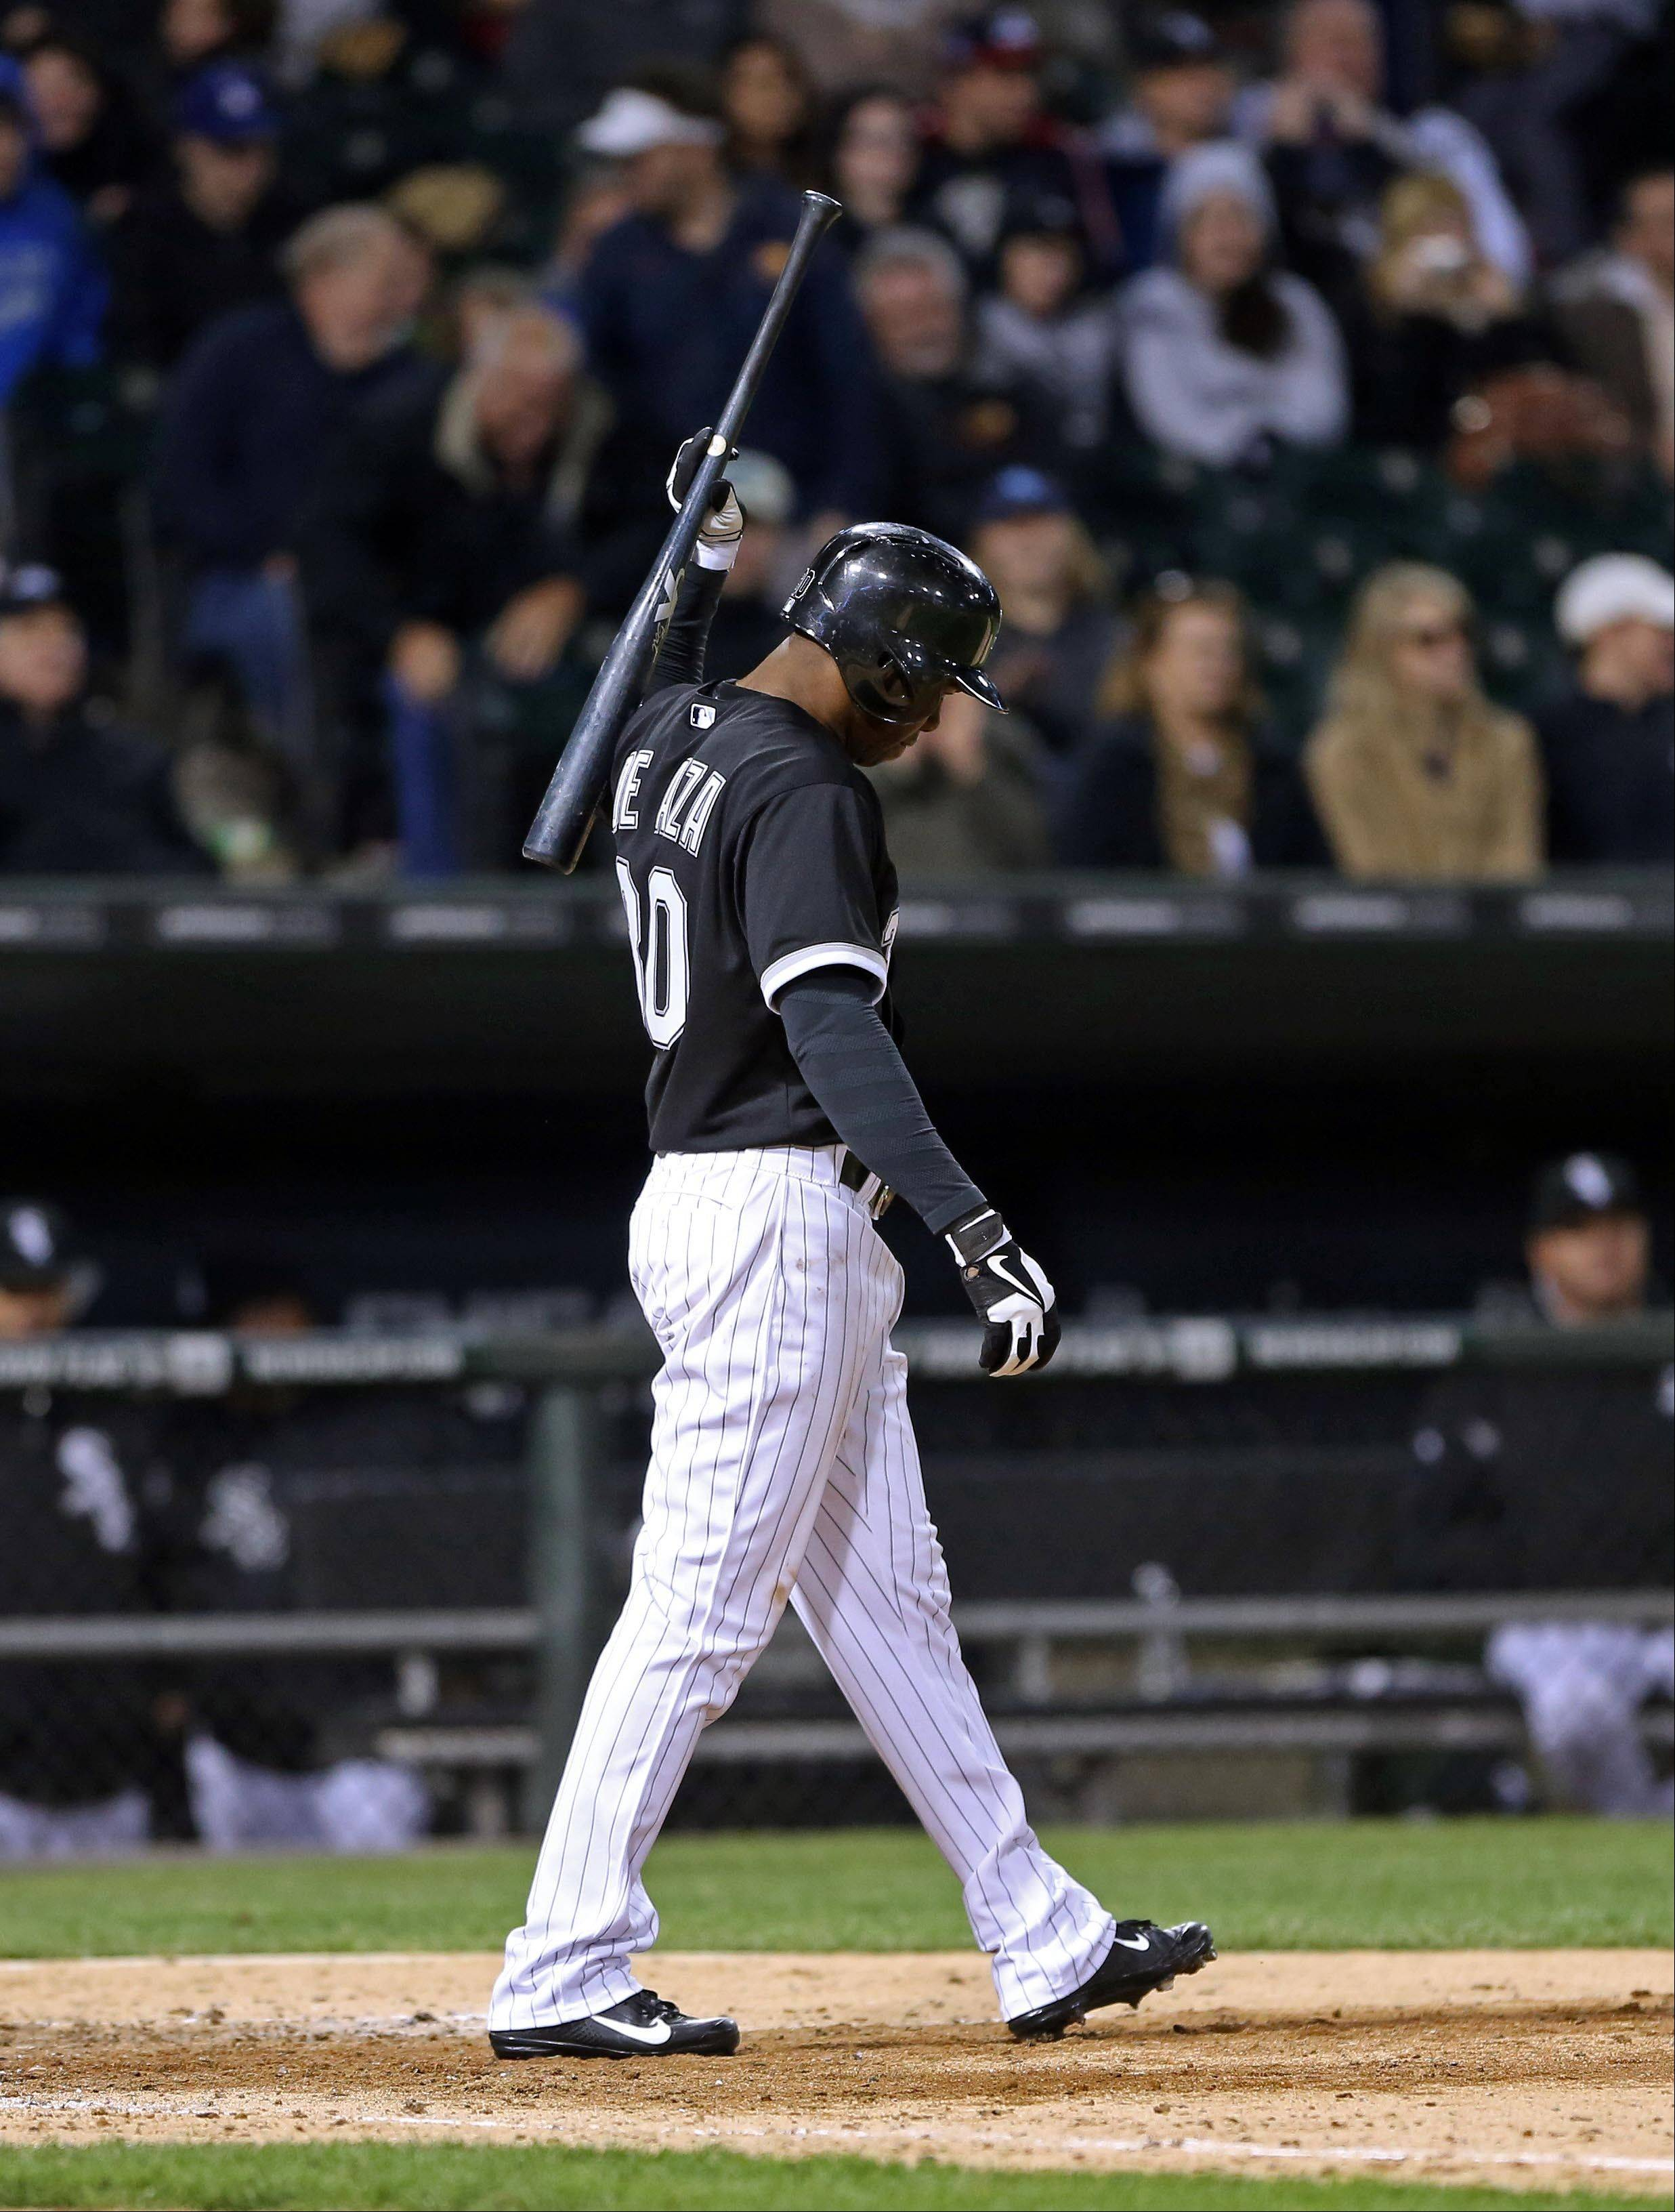 The White Sox�s Alejandro De Aza strikes out with the bases loaded to end the eighth inning against the Tampa Bay Rays Saturday night at U.S. Cellular Field. The Sox lost 10-4.